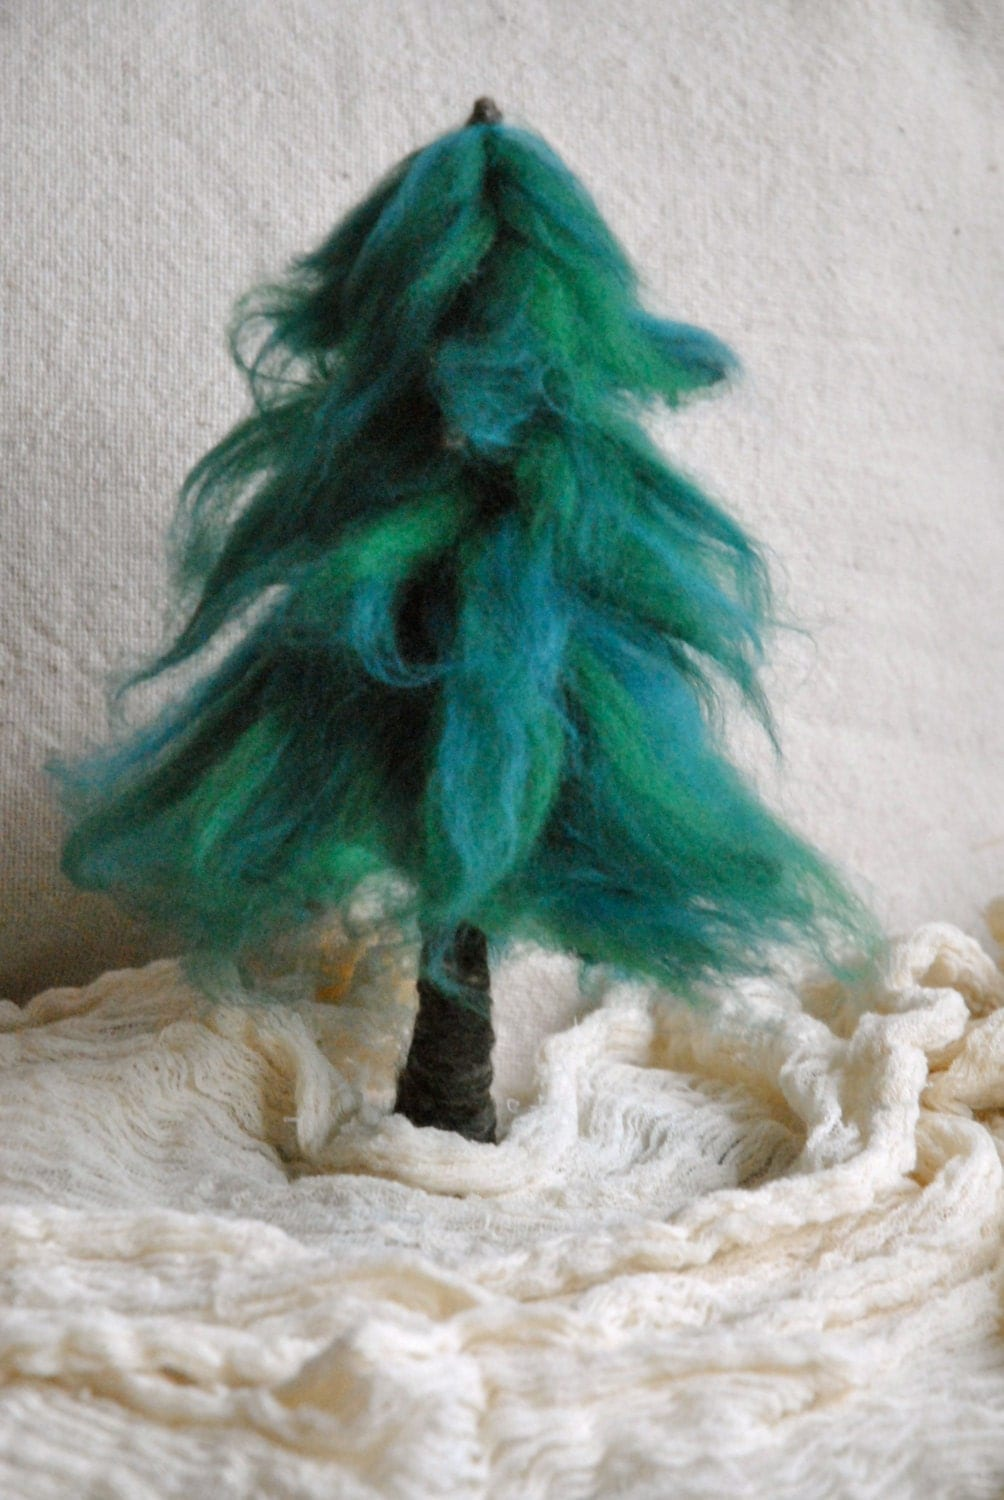 Needle felted Tree Waldorf Inspired : Pine. by MagicWool on Etsy